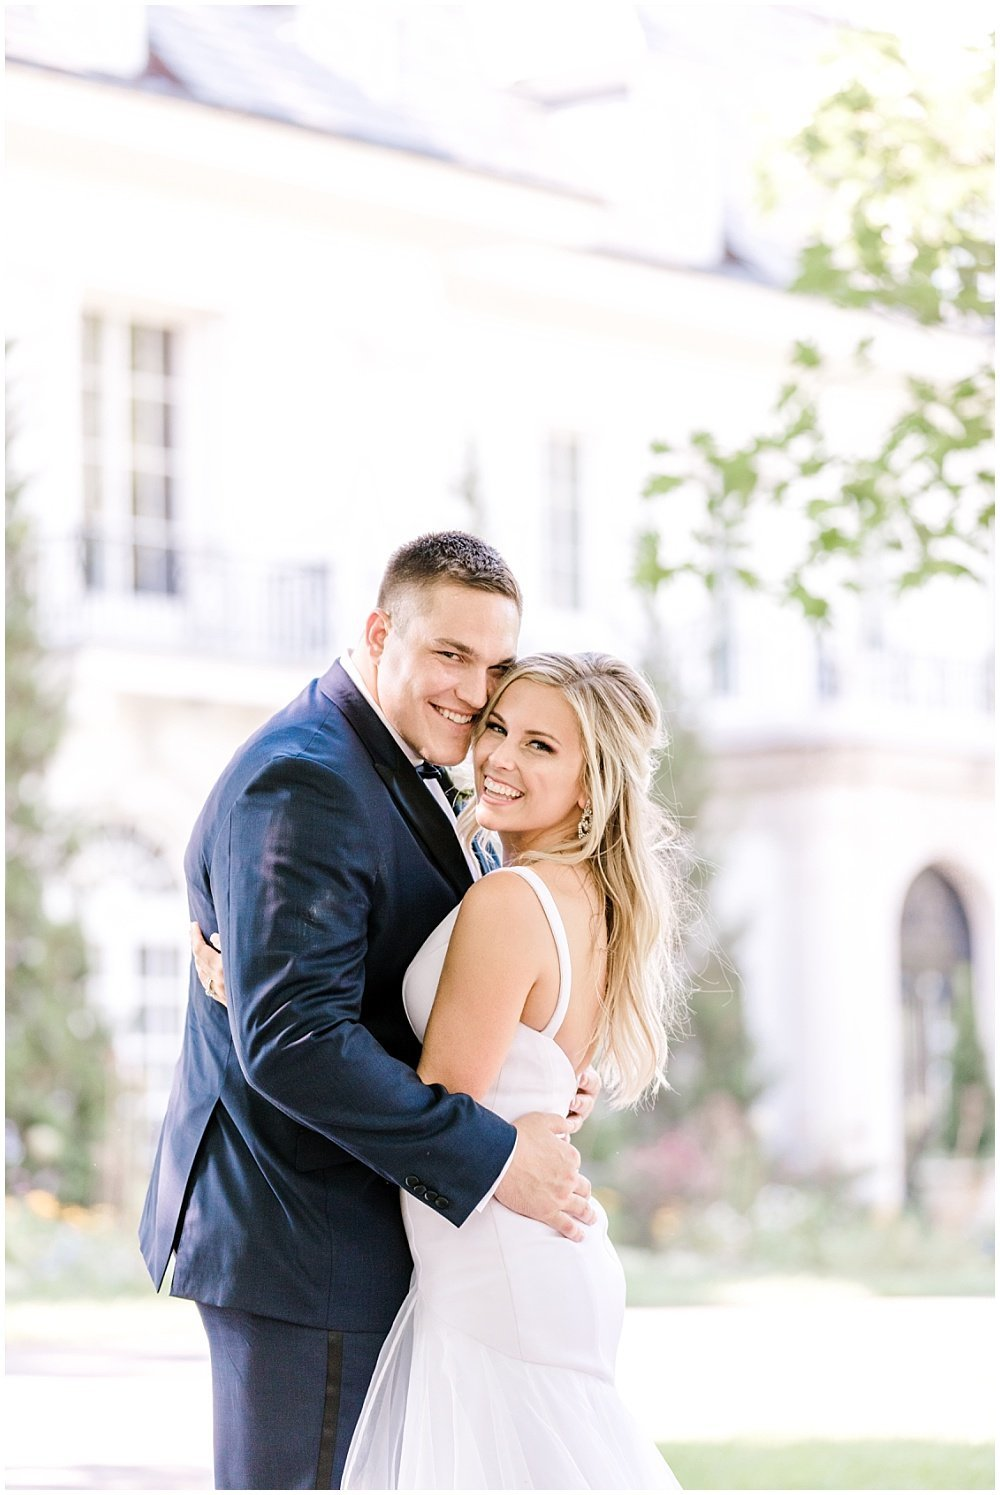 NFL-Player-Nick-Martin-Indianapolis-Indiana-Wedding-The-Knot-Featured-Jessica-Dum-Wedding-Coordination-photo__0013